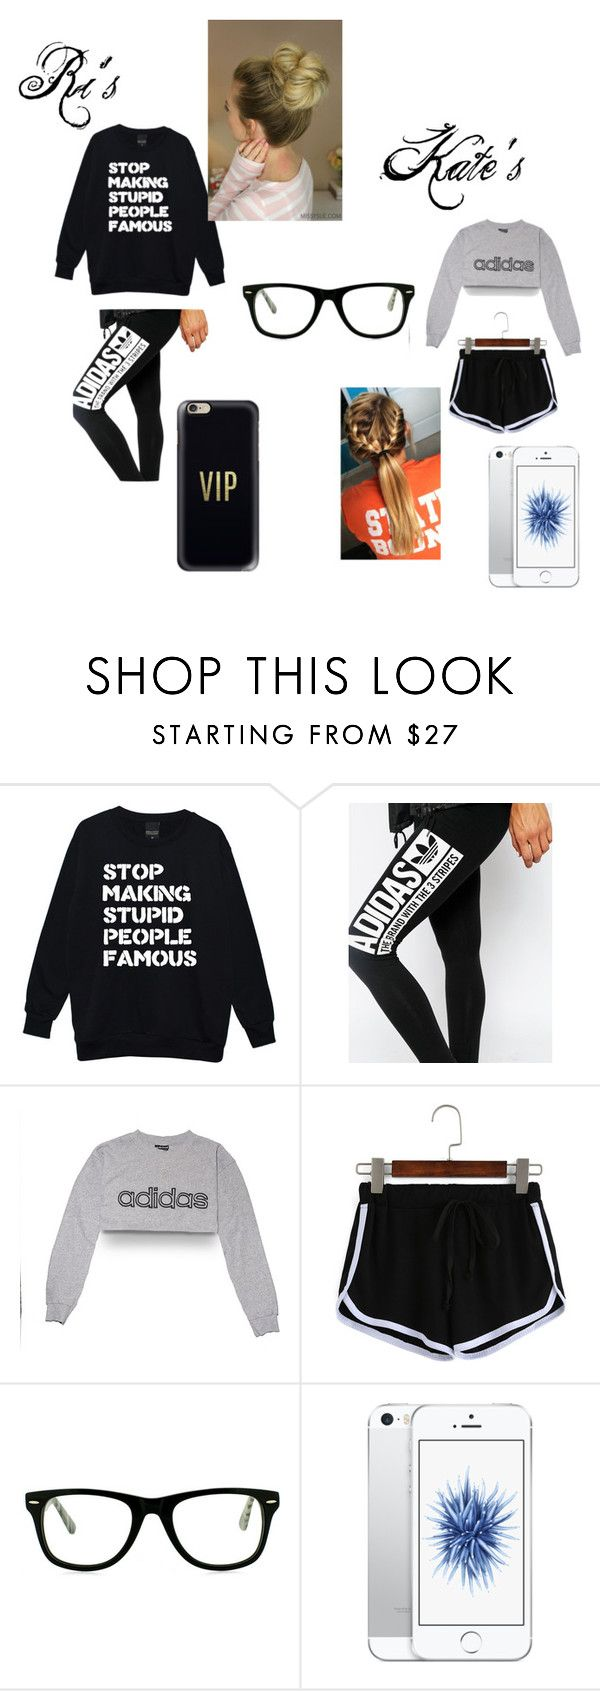 """""""Sleepover"""" by riley-mcmullen ❤ liked on Polyvore featuring adidas, Muse and Casetify"""